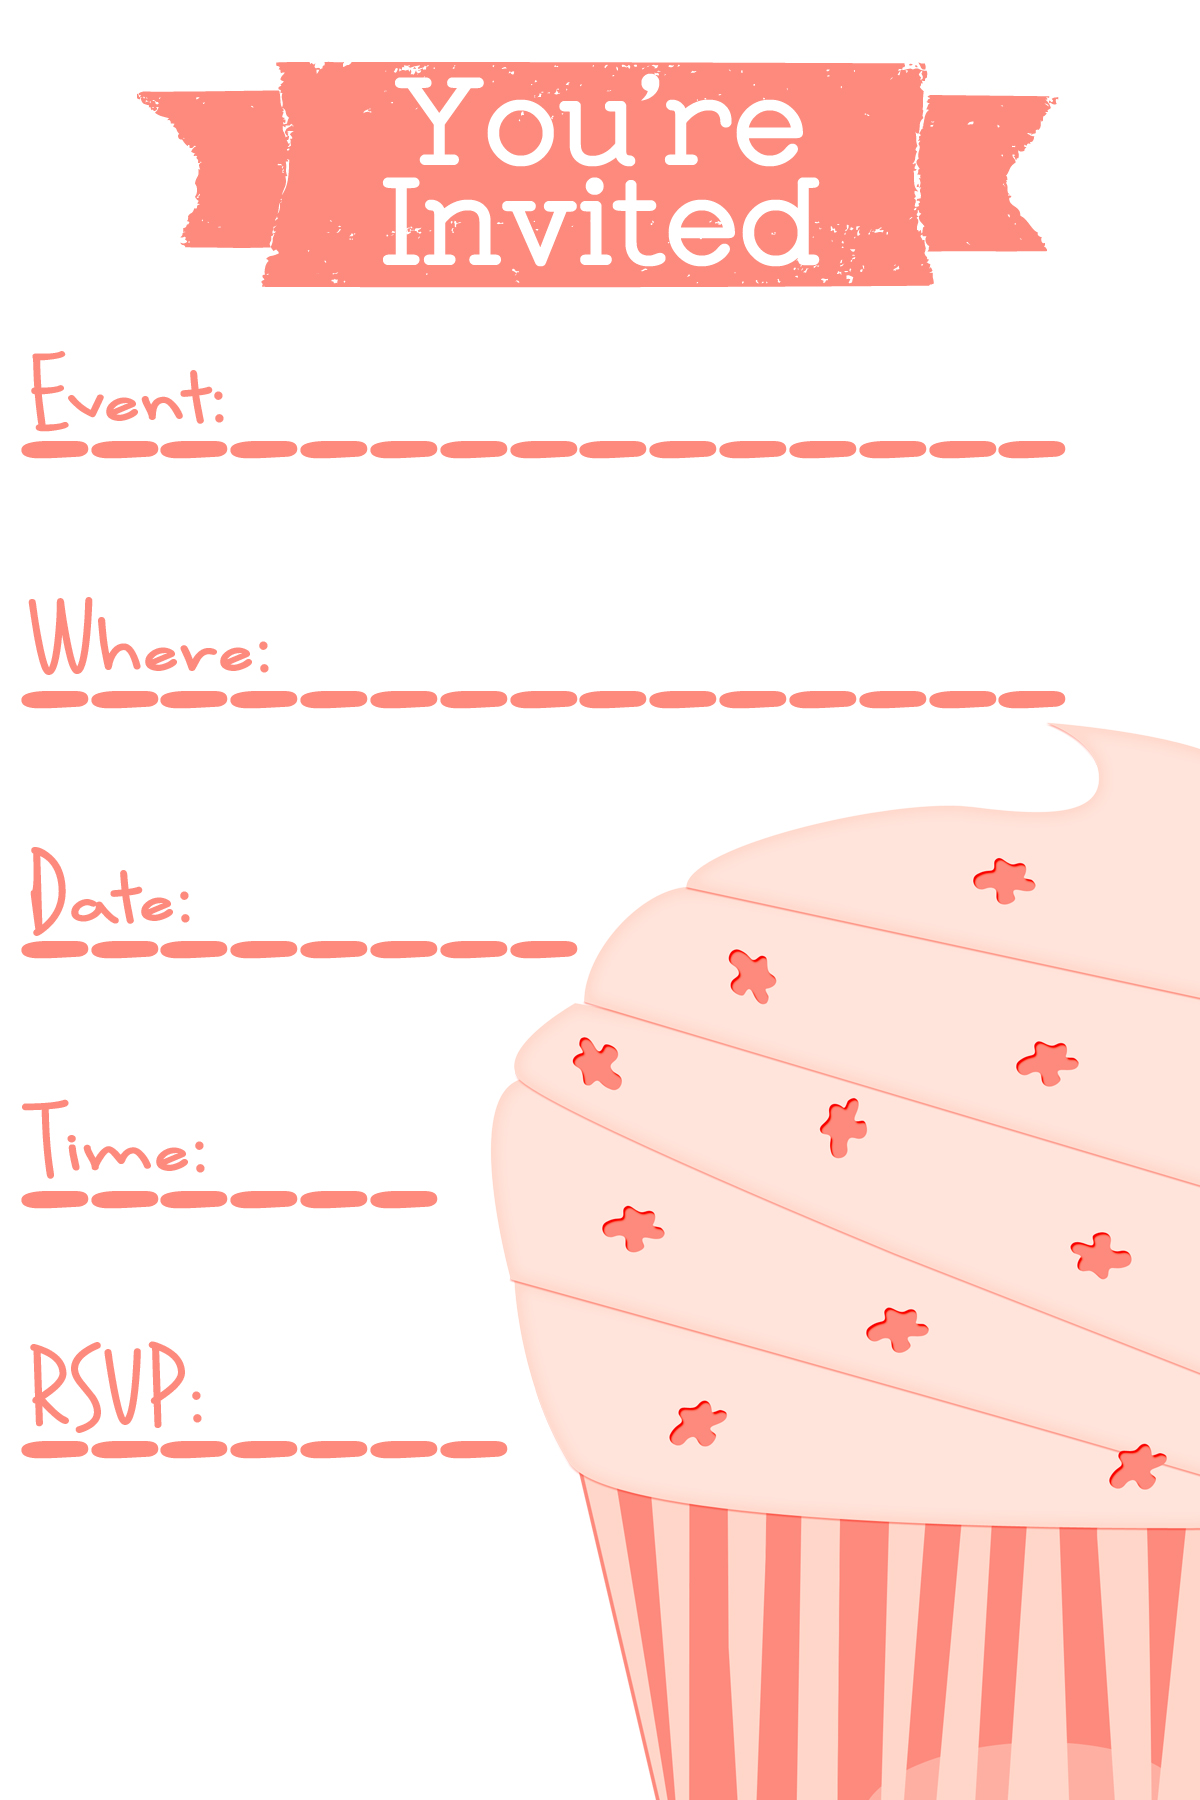 birthday invitation layout ; Free-party-invitation-templates-for-a-drop-dead-party-invitation-design-with-drop-dead-layout-1